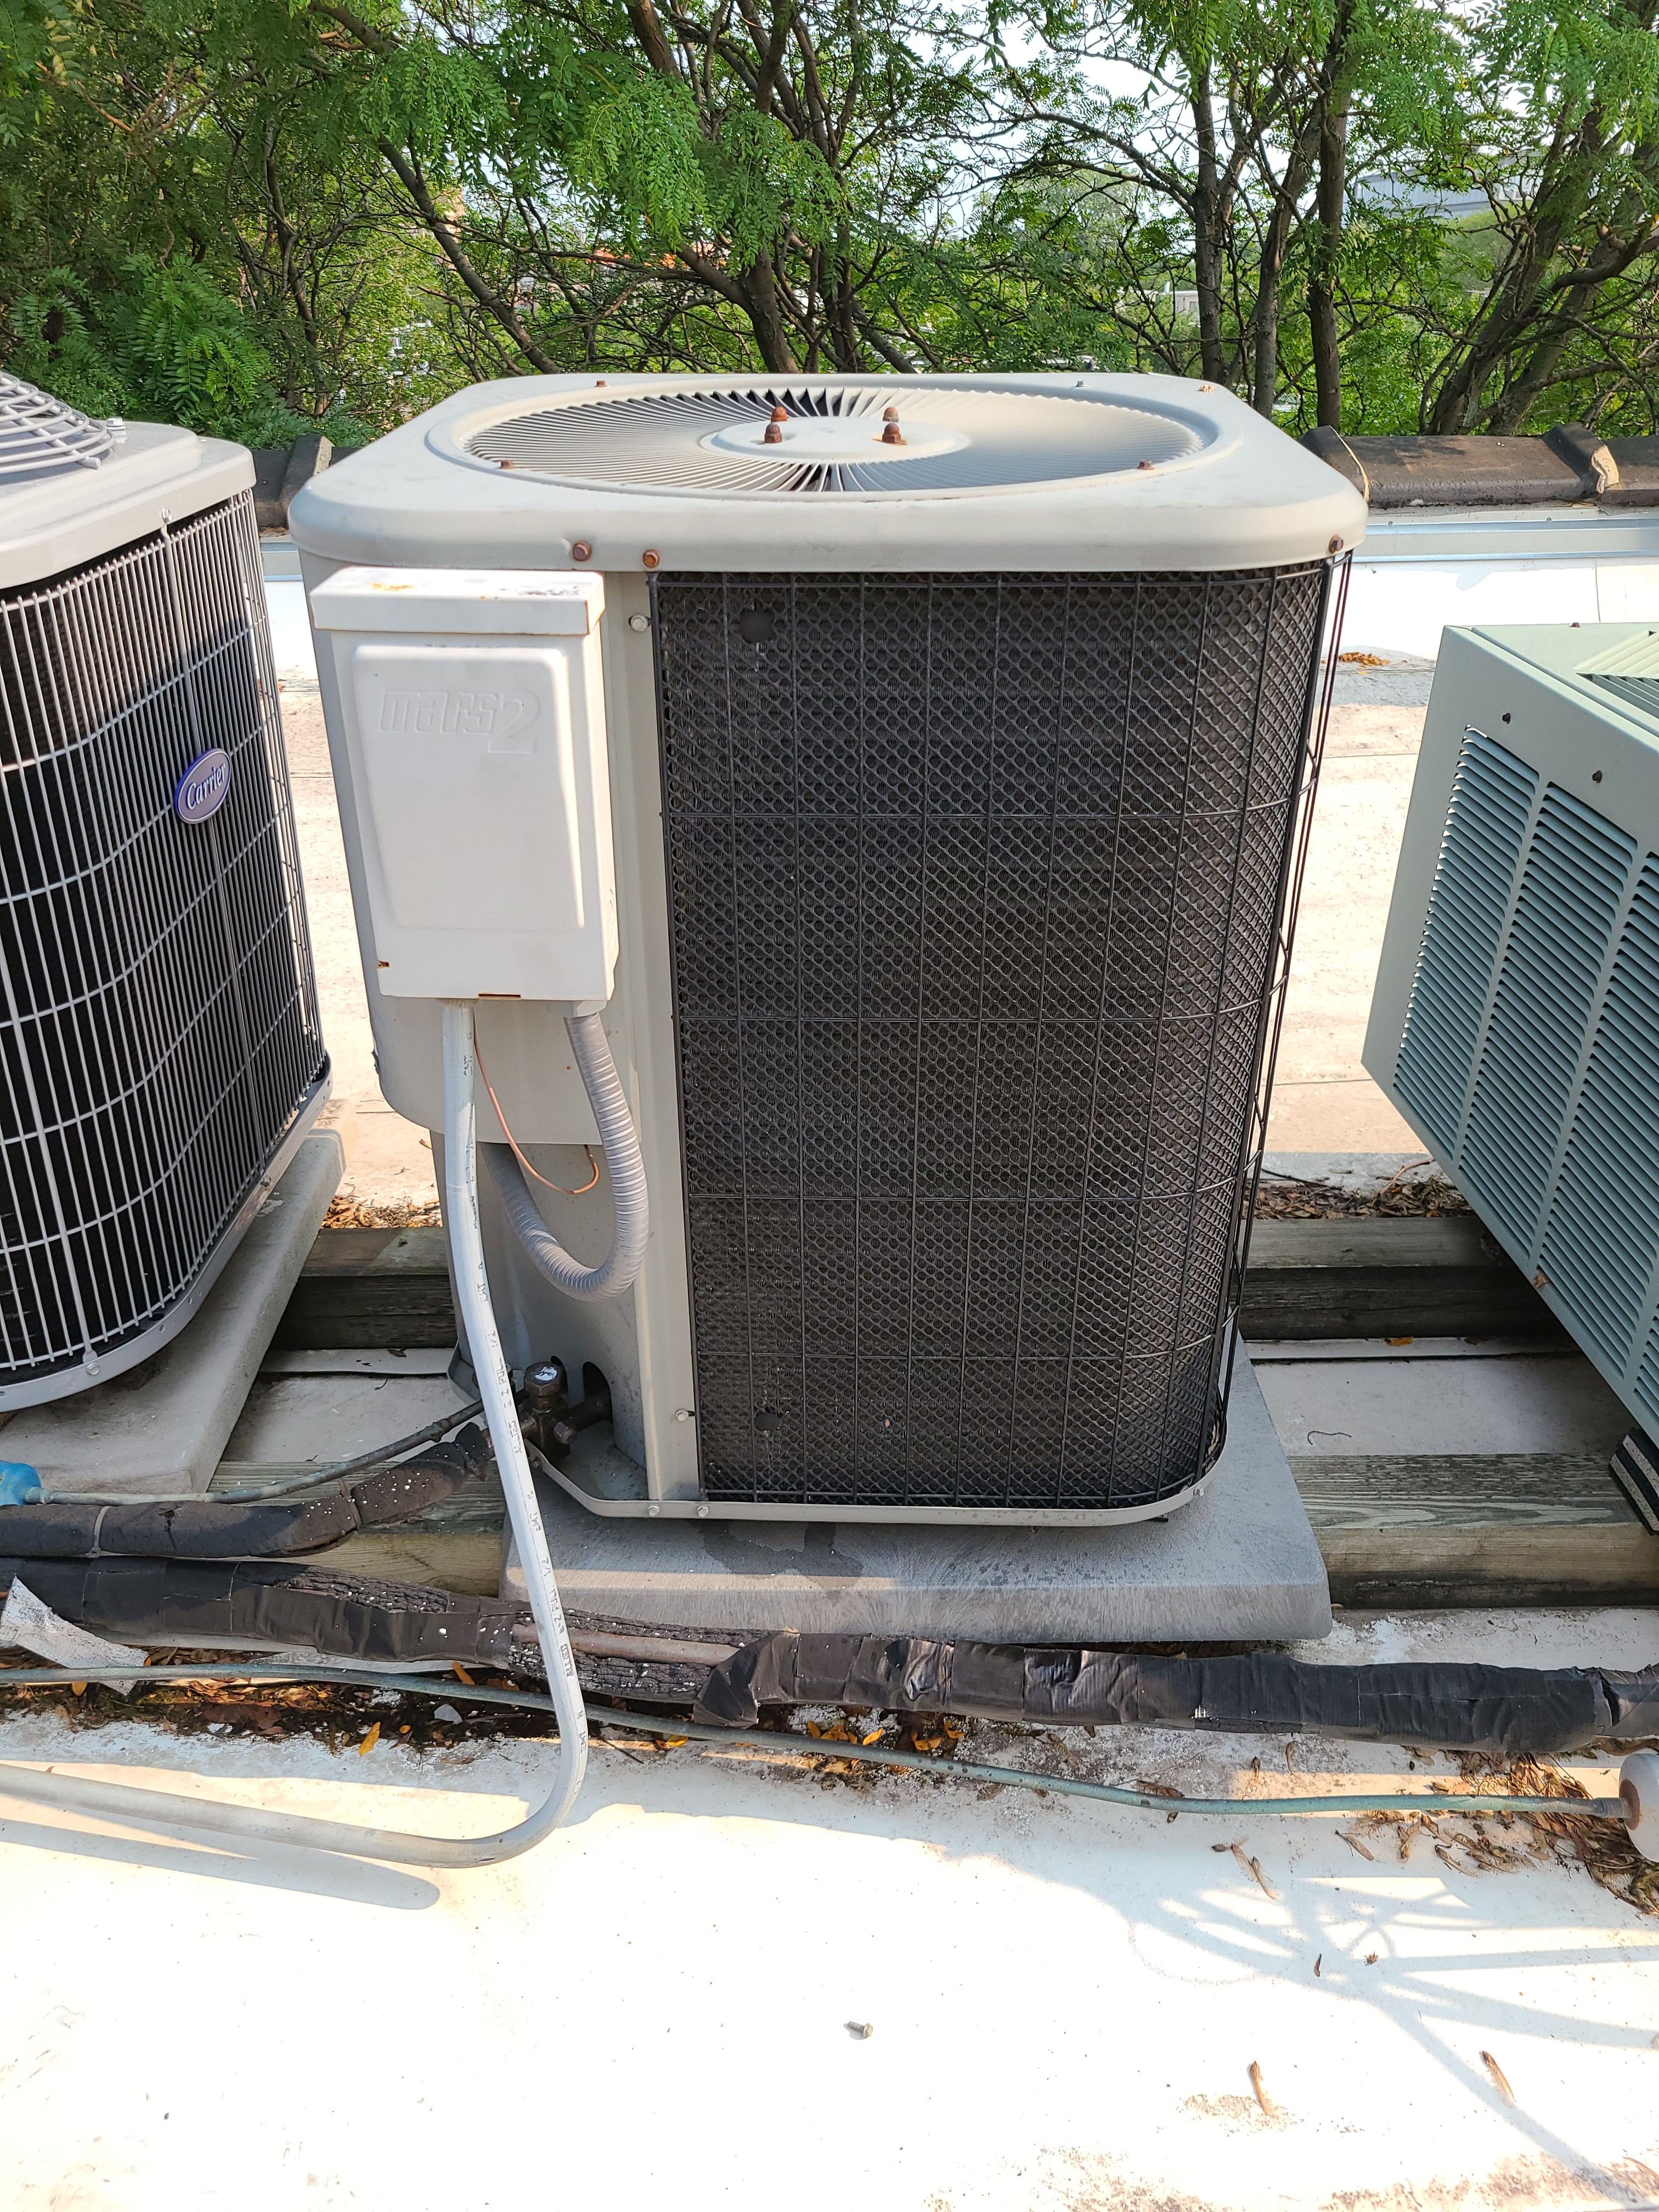 Photo of Lennox condenser after performing CTS